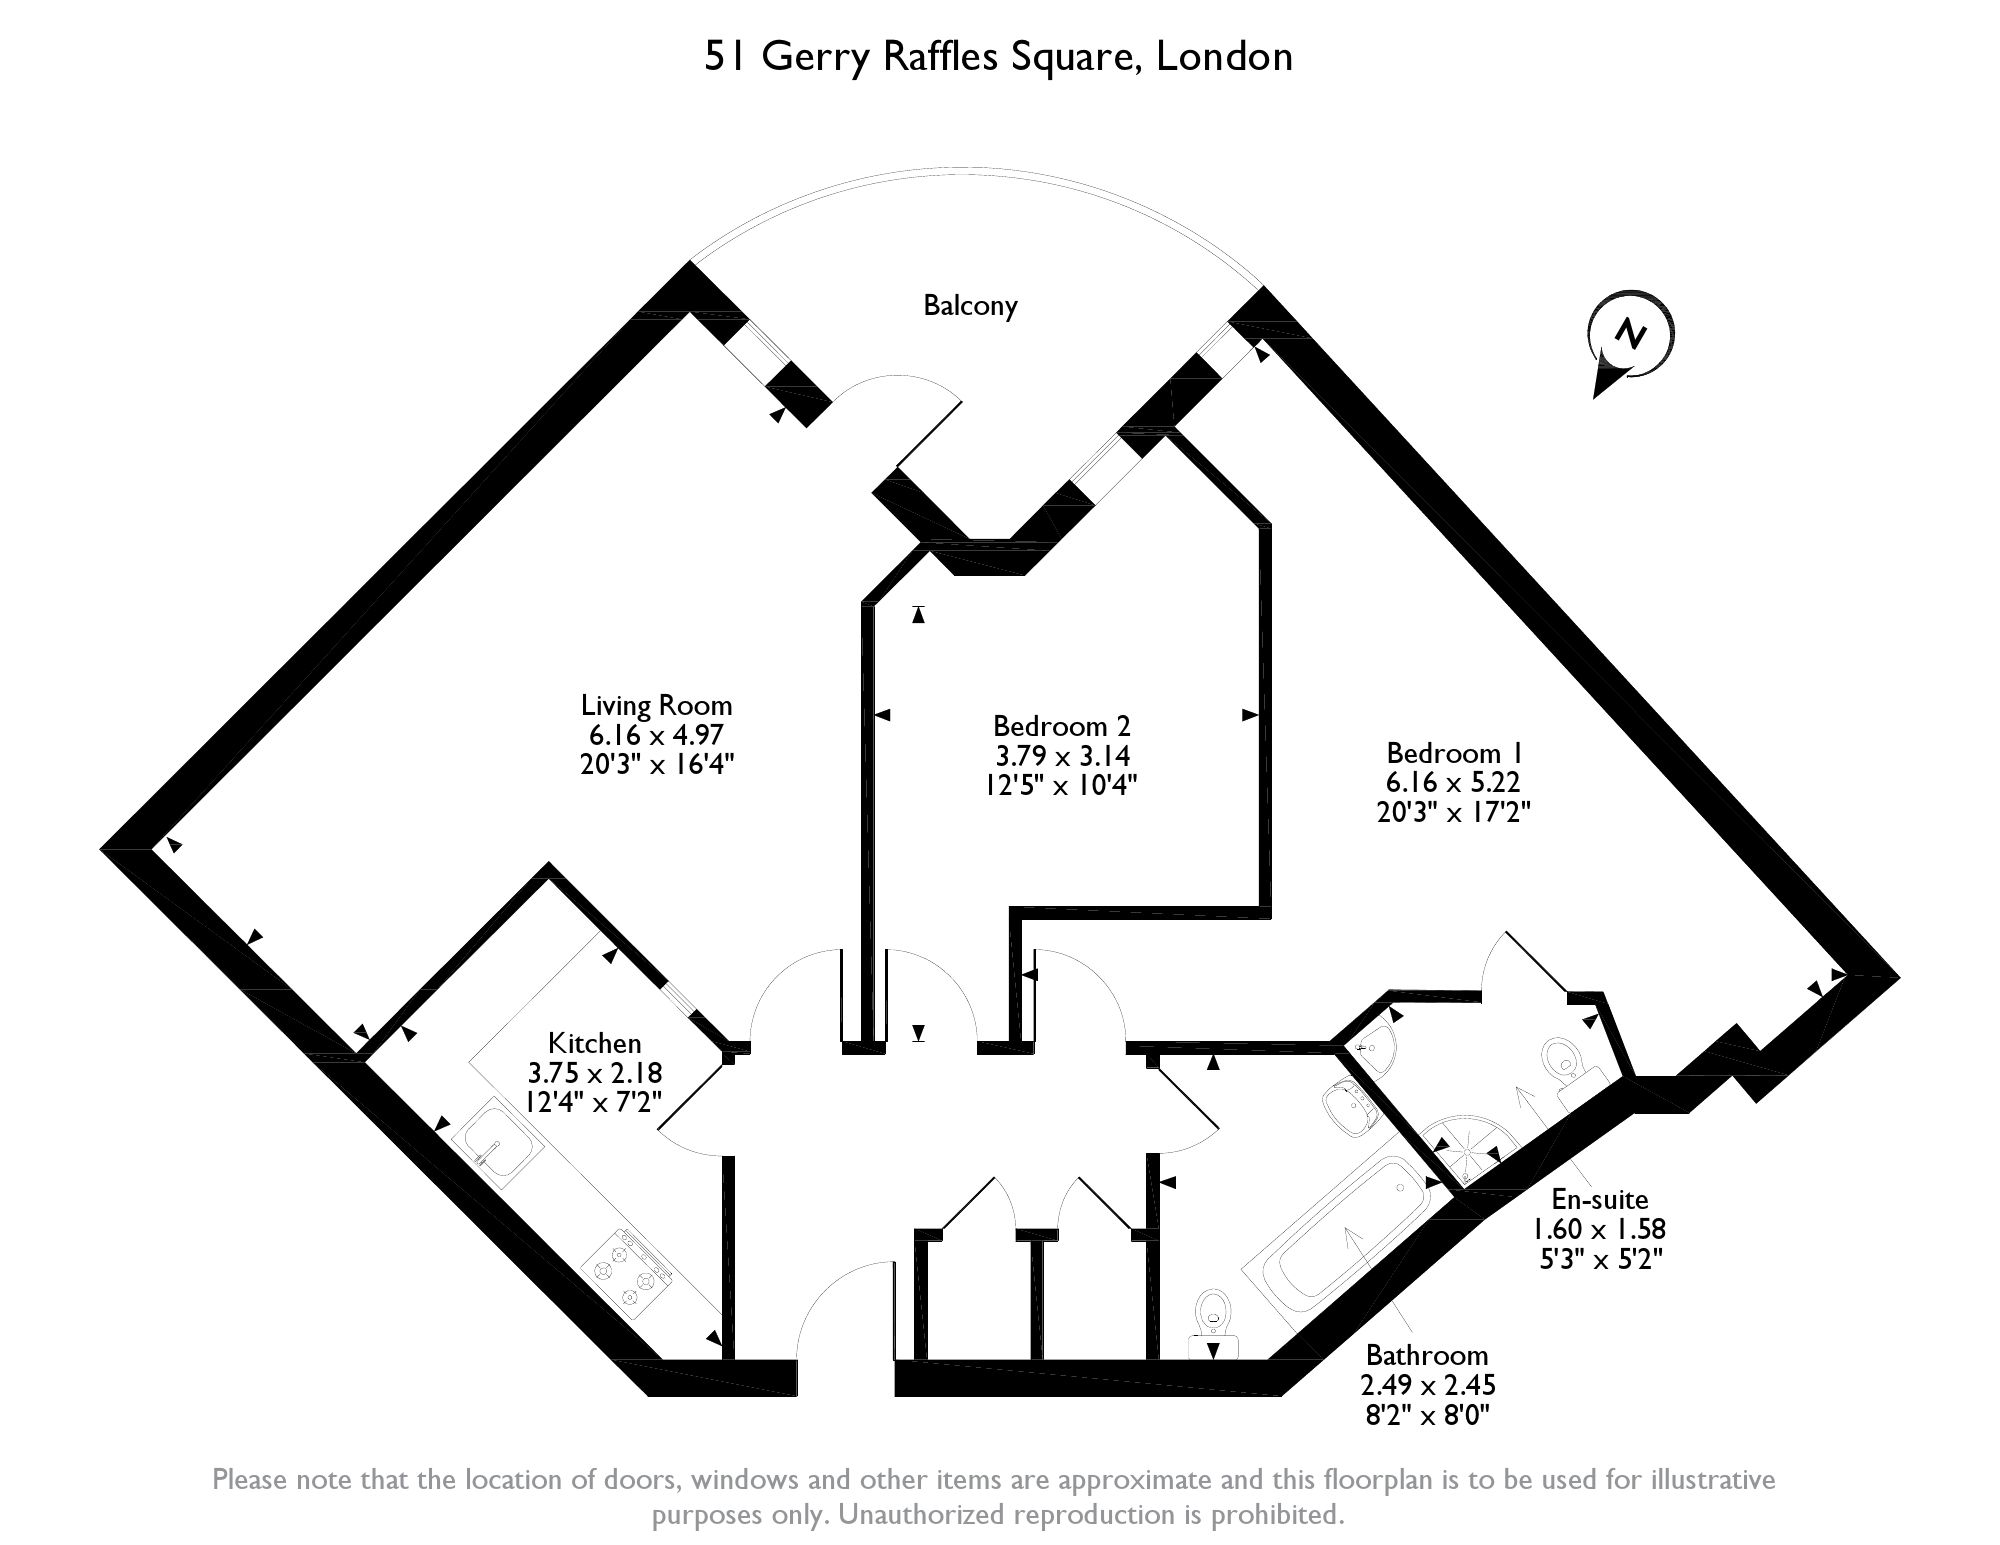 Gerry Raffles Square, London, E15